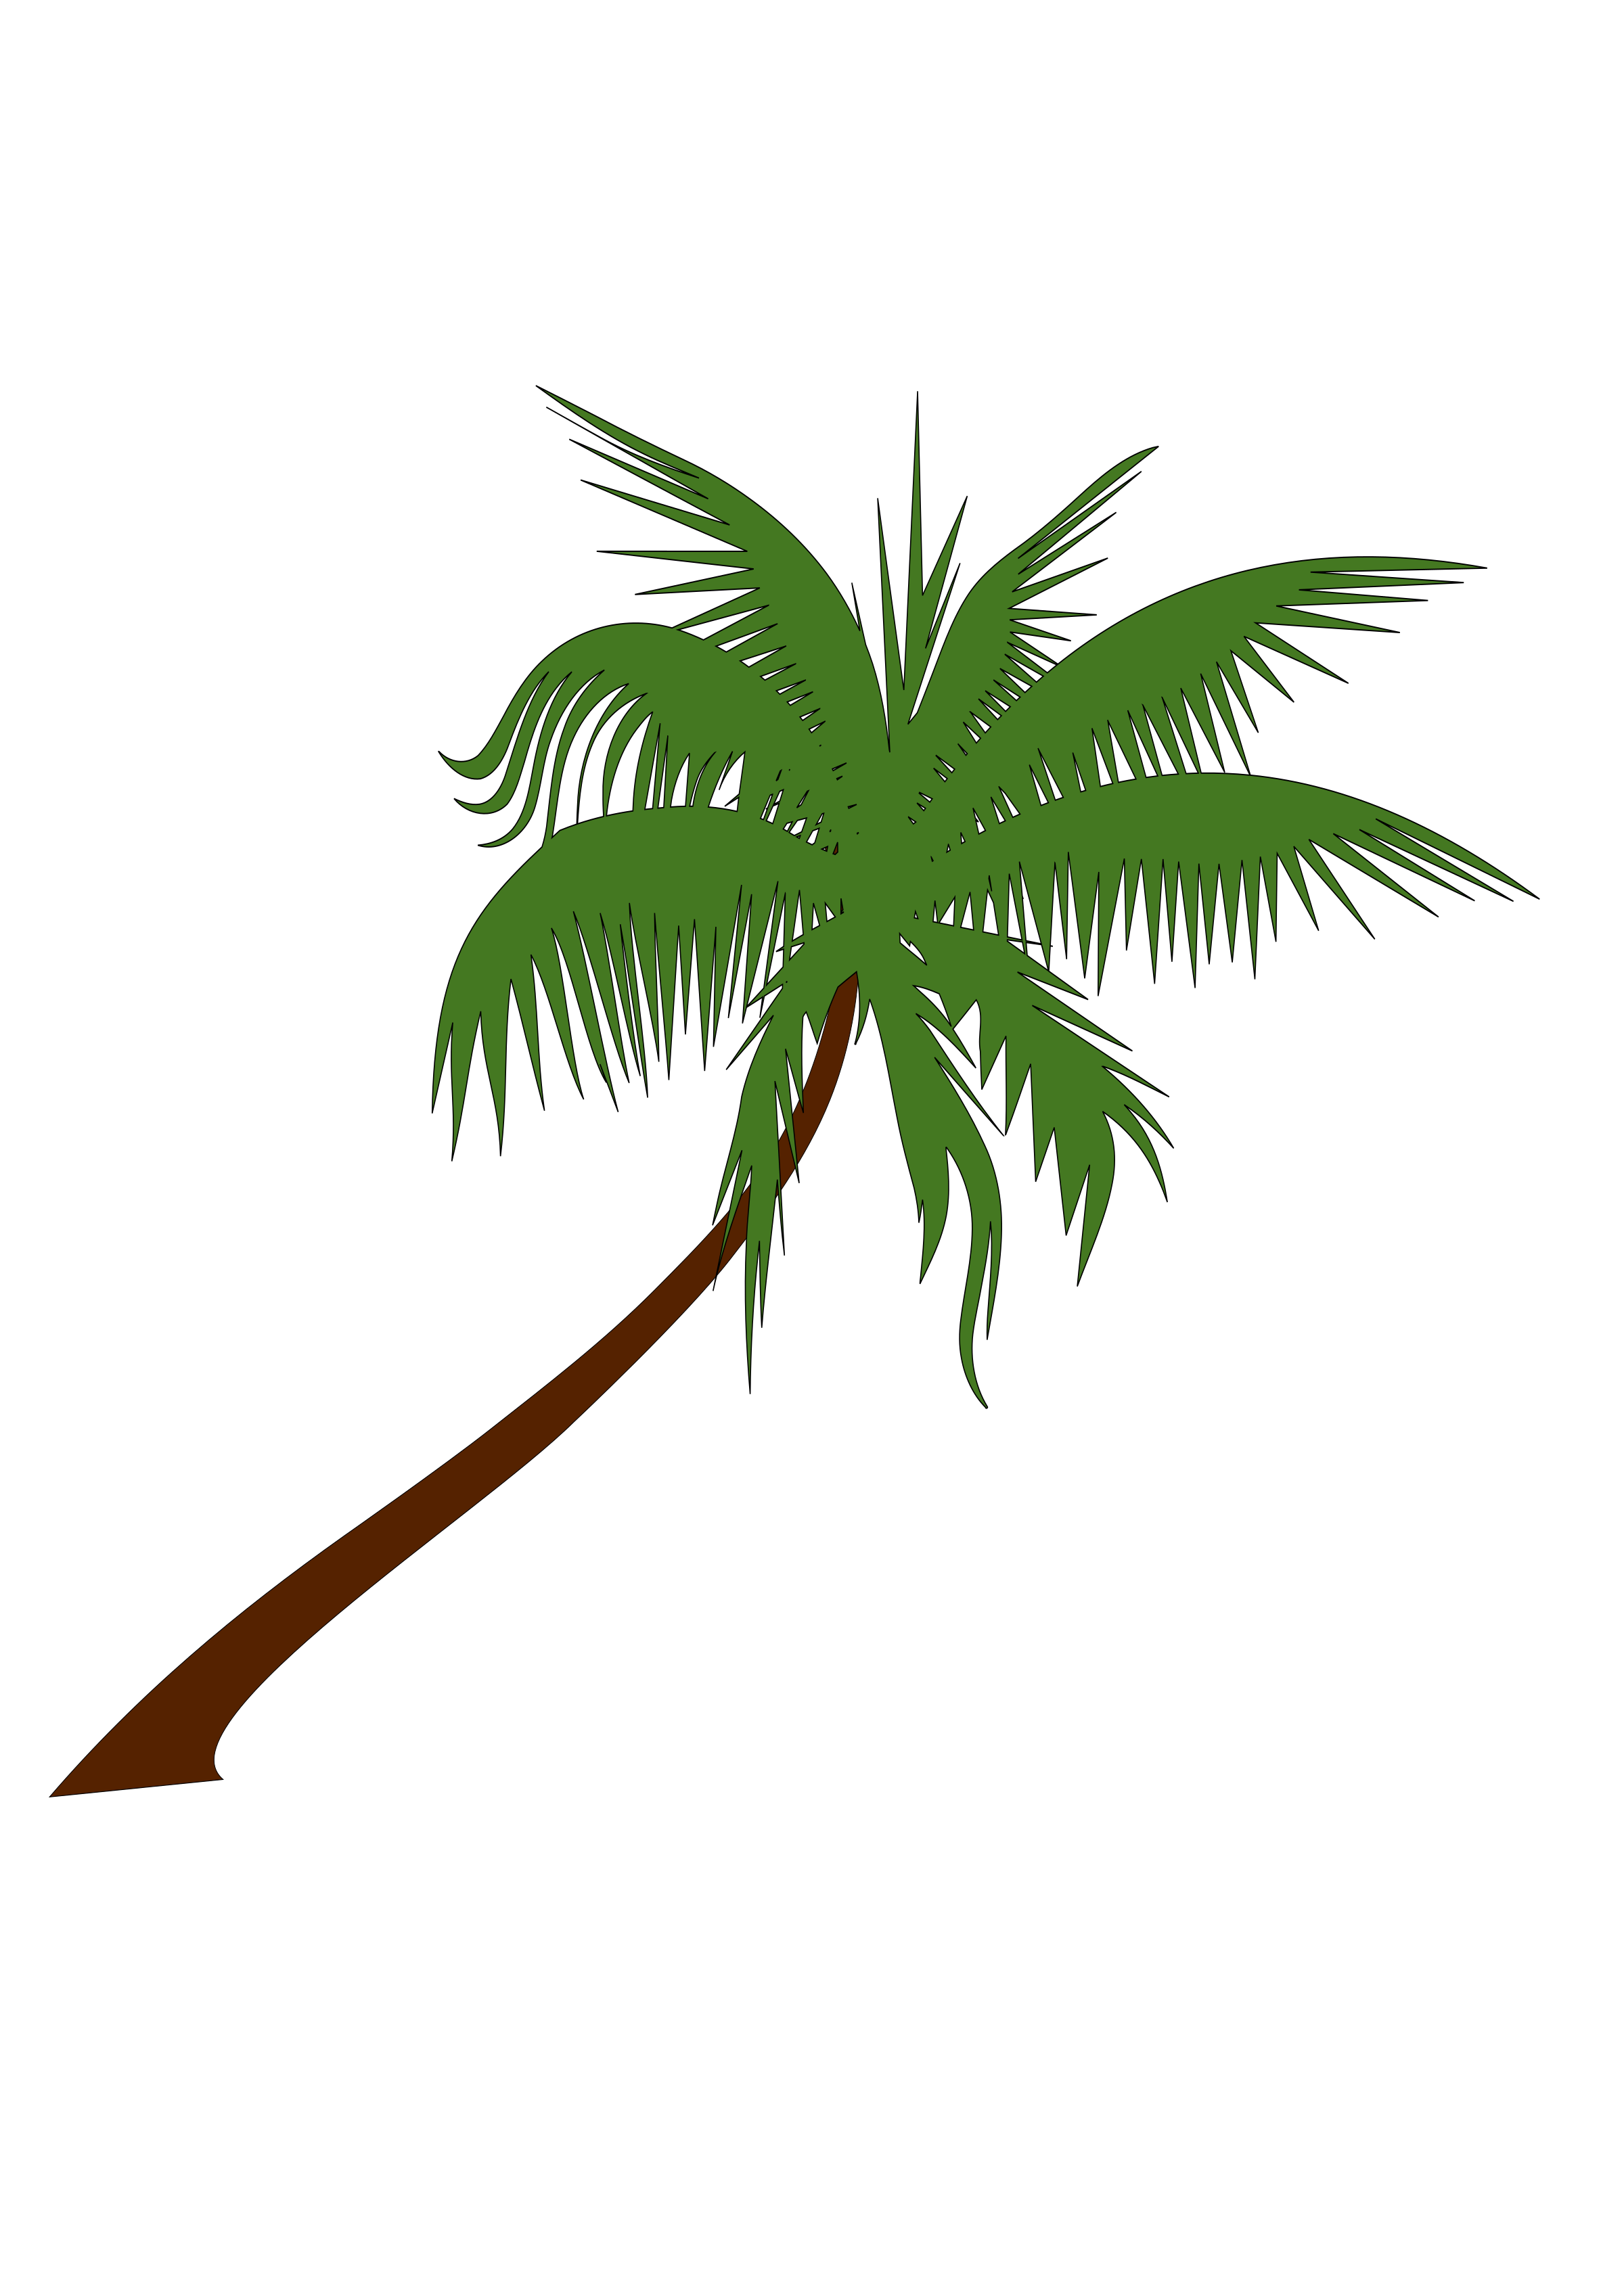 Best Free Coconut Tree Png Image image #46408